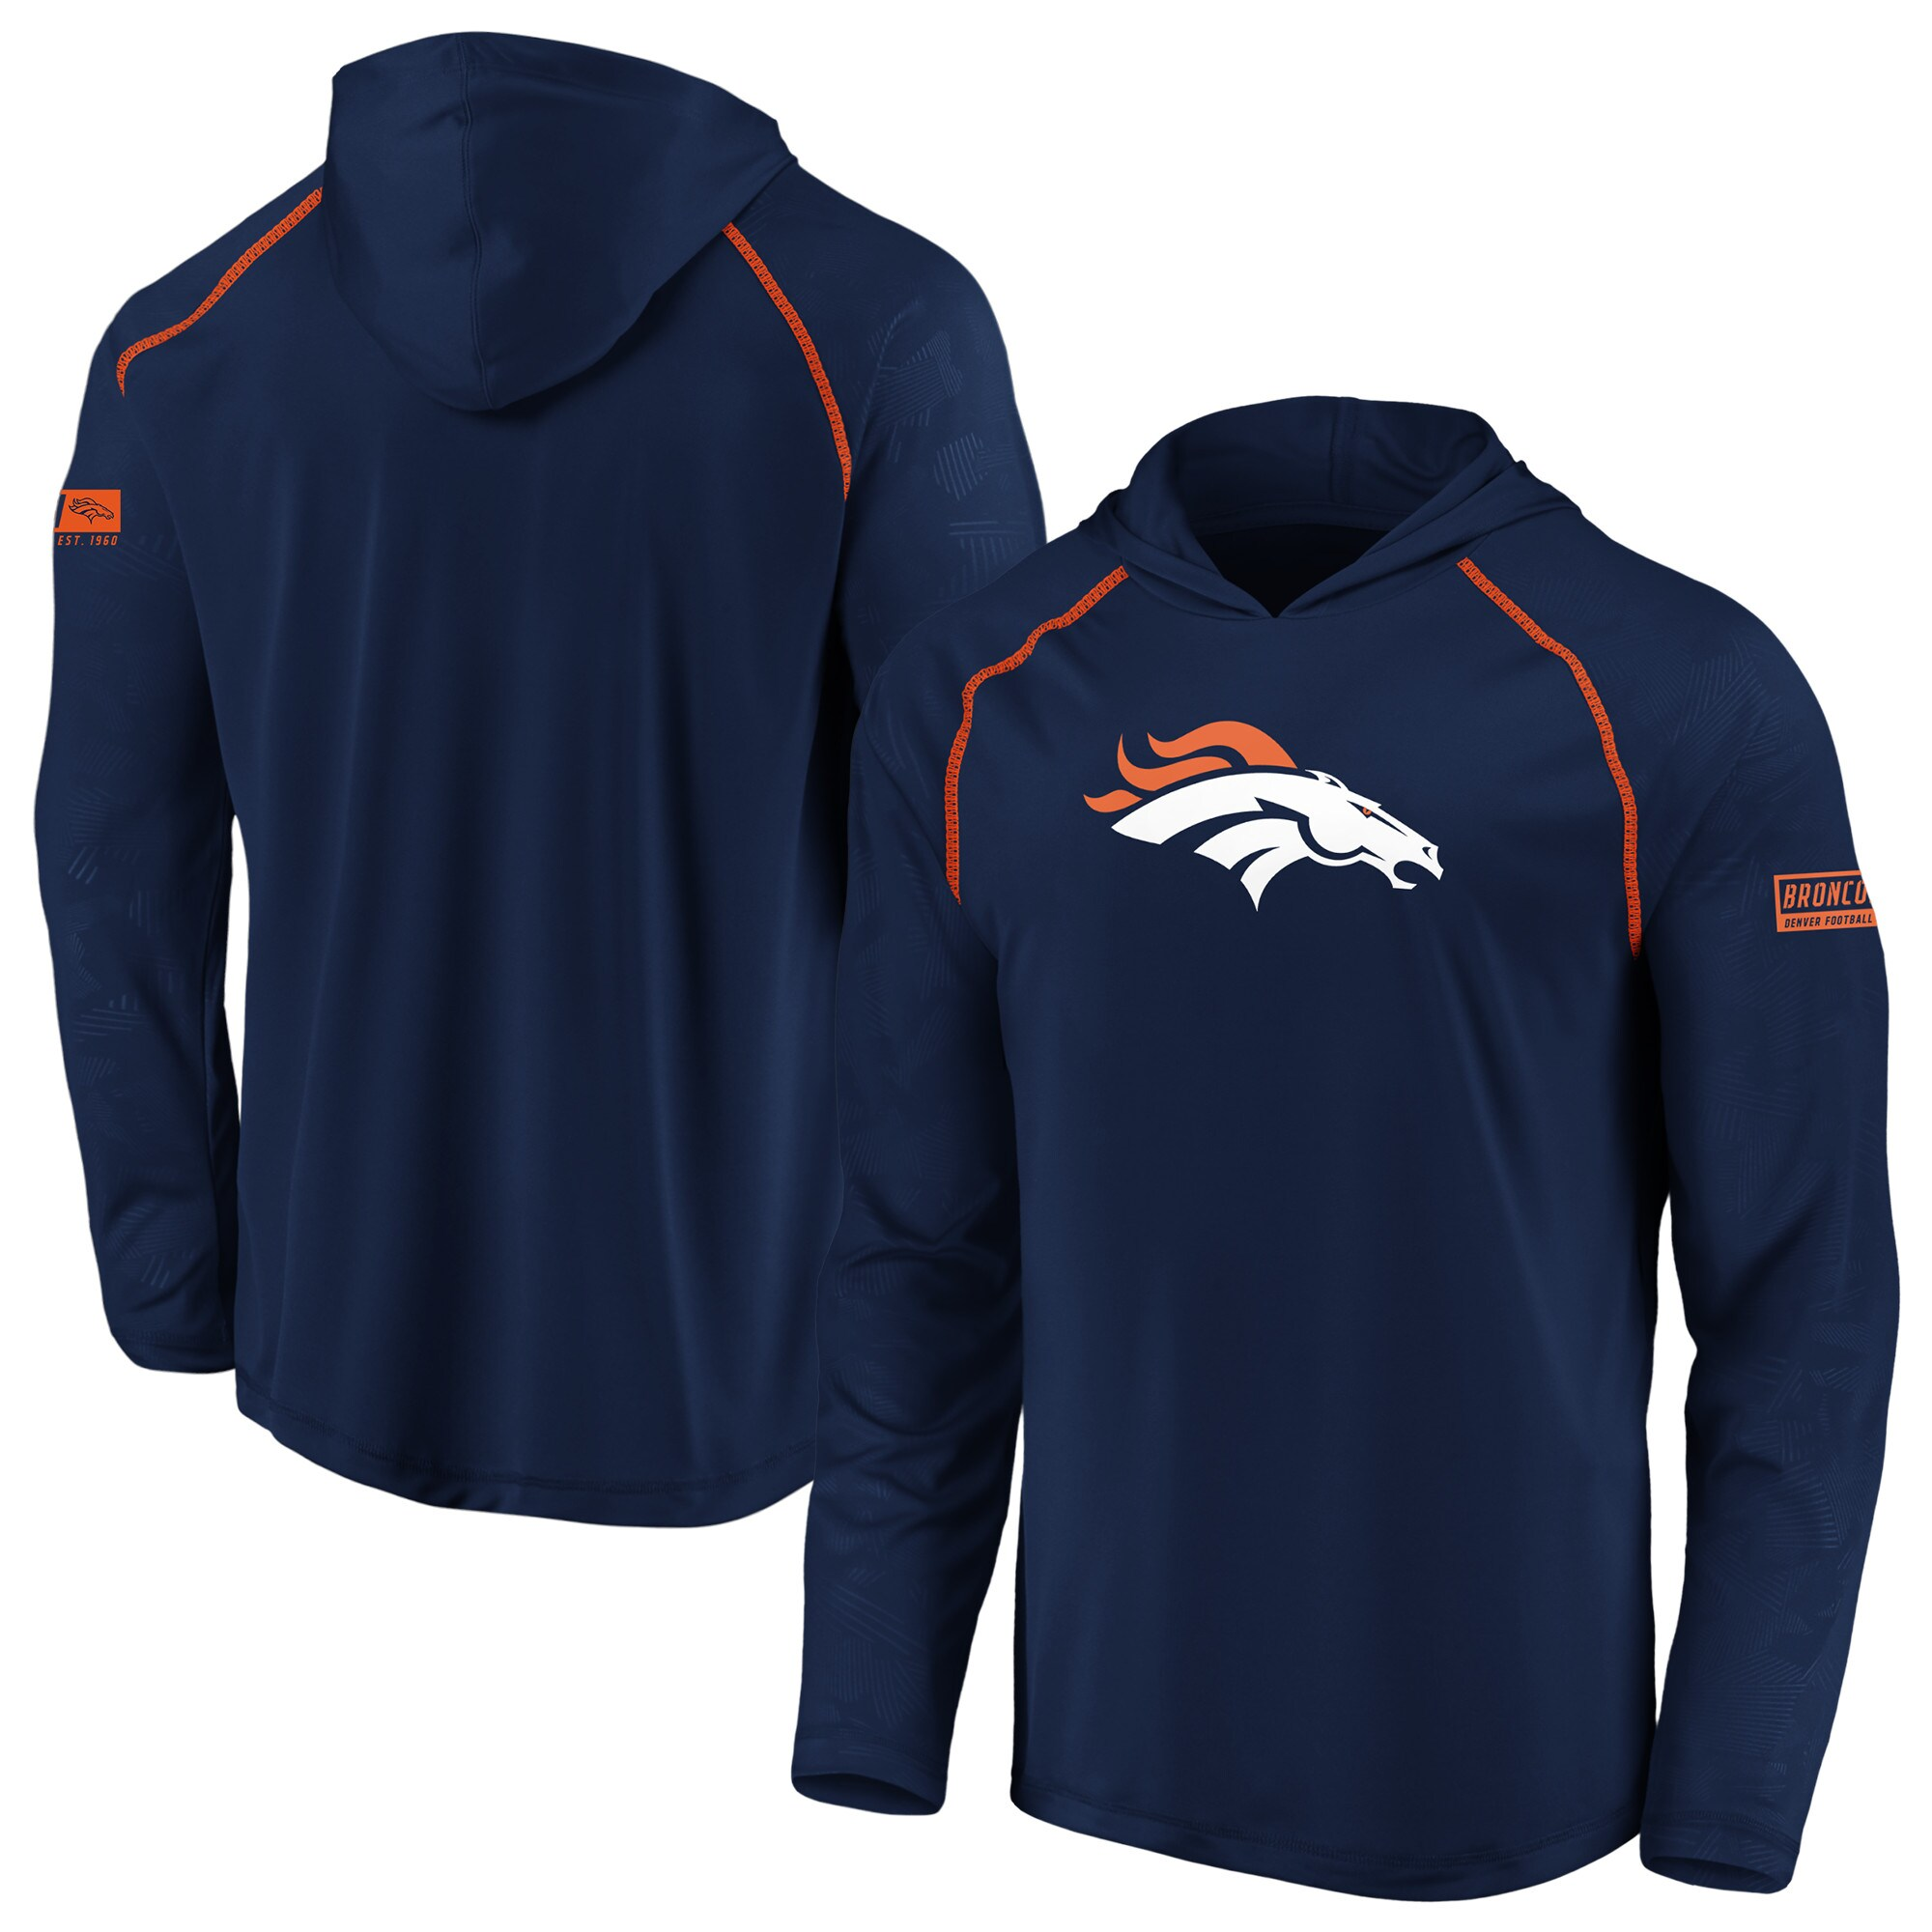 Denver Broncos NFL Pro Line by Fanatics Branded Big & Tall Iconic Defender Primary Logo Raglan Long Sleeve Hoodie T-Shirt - Navy